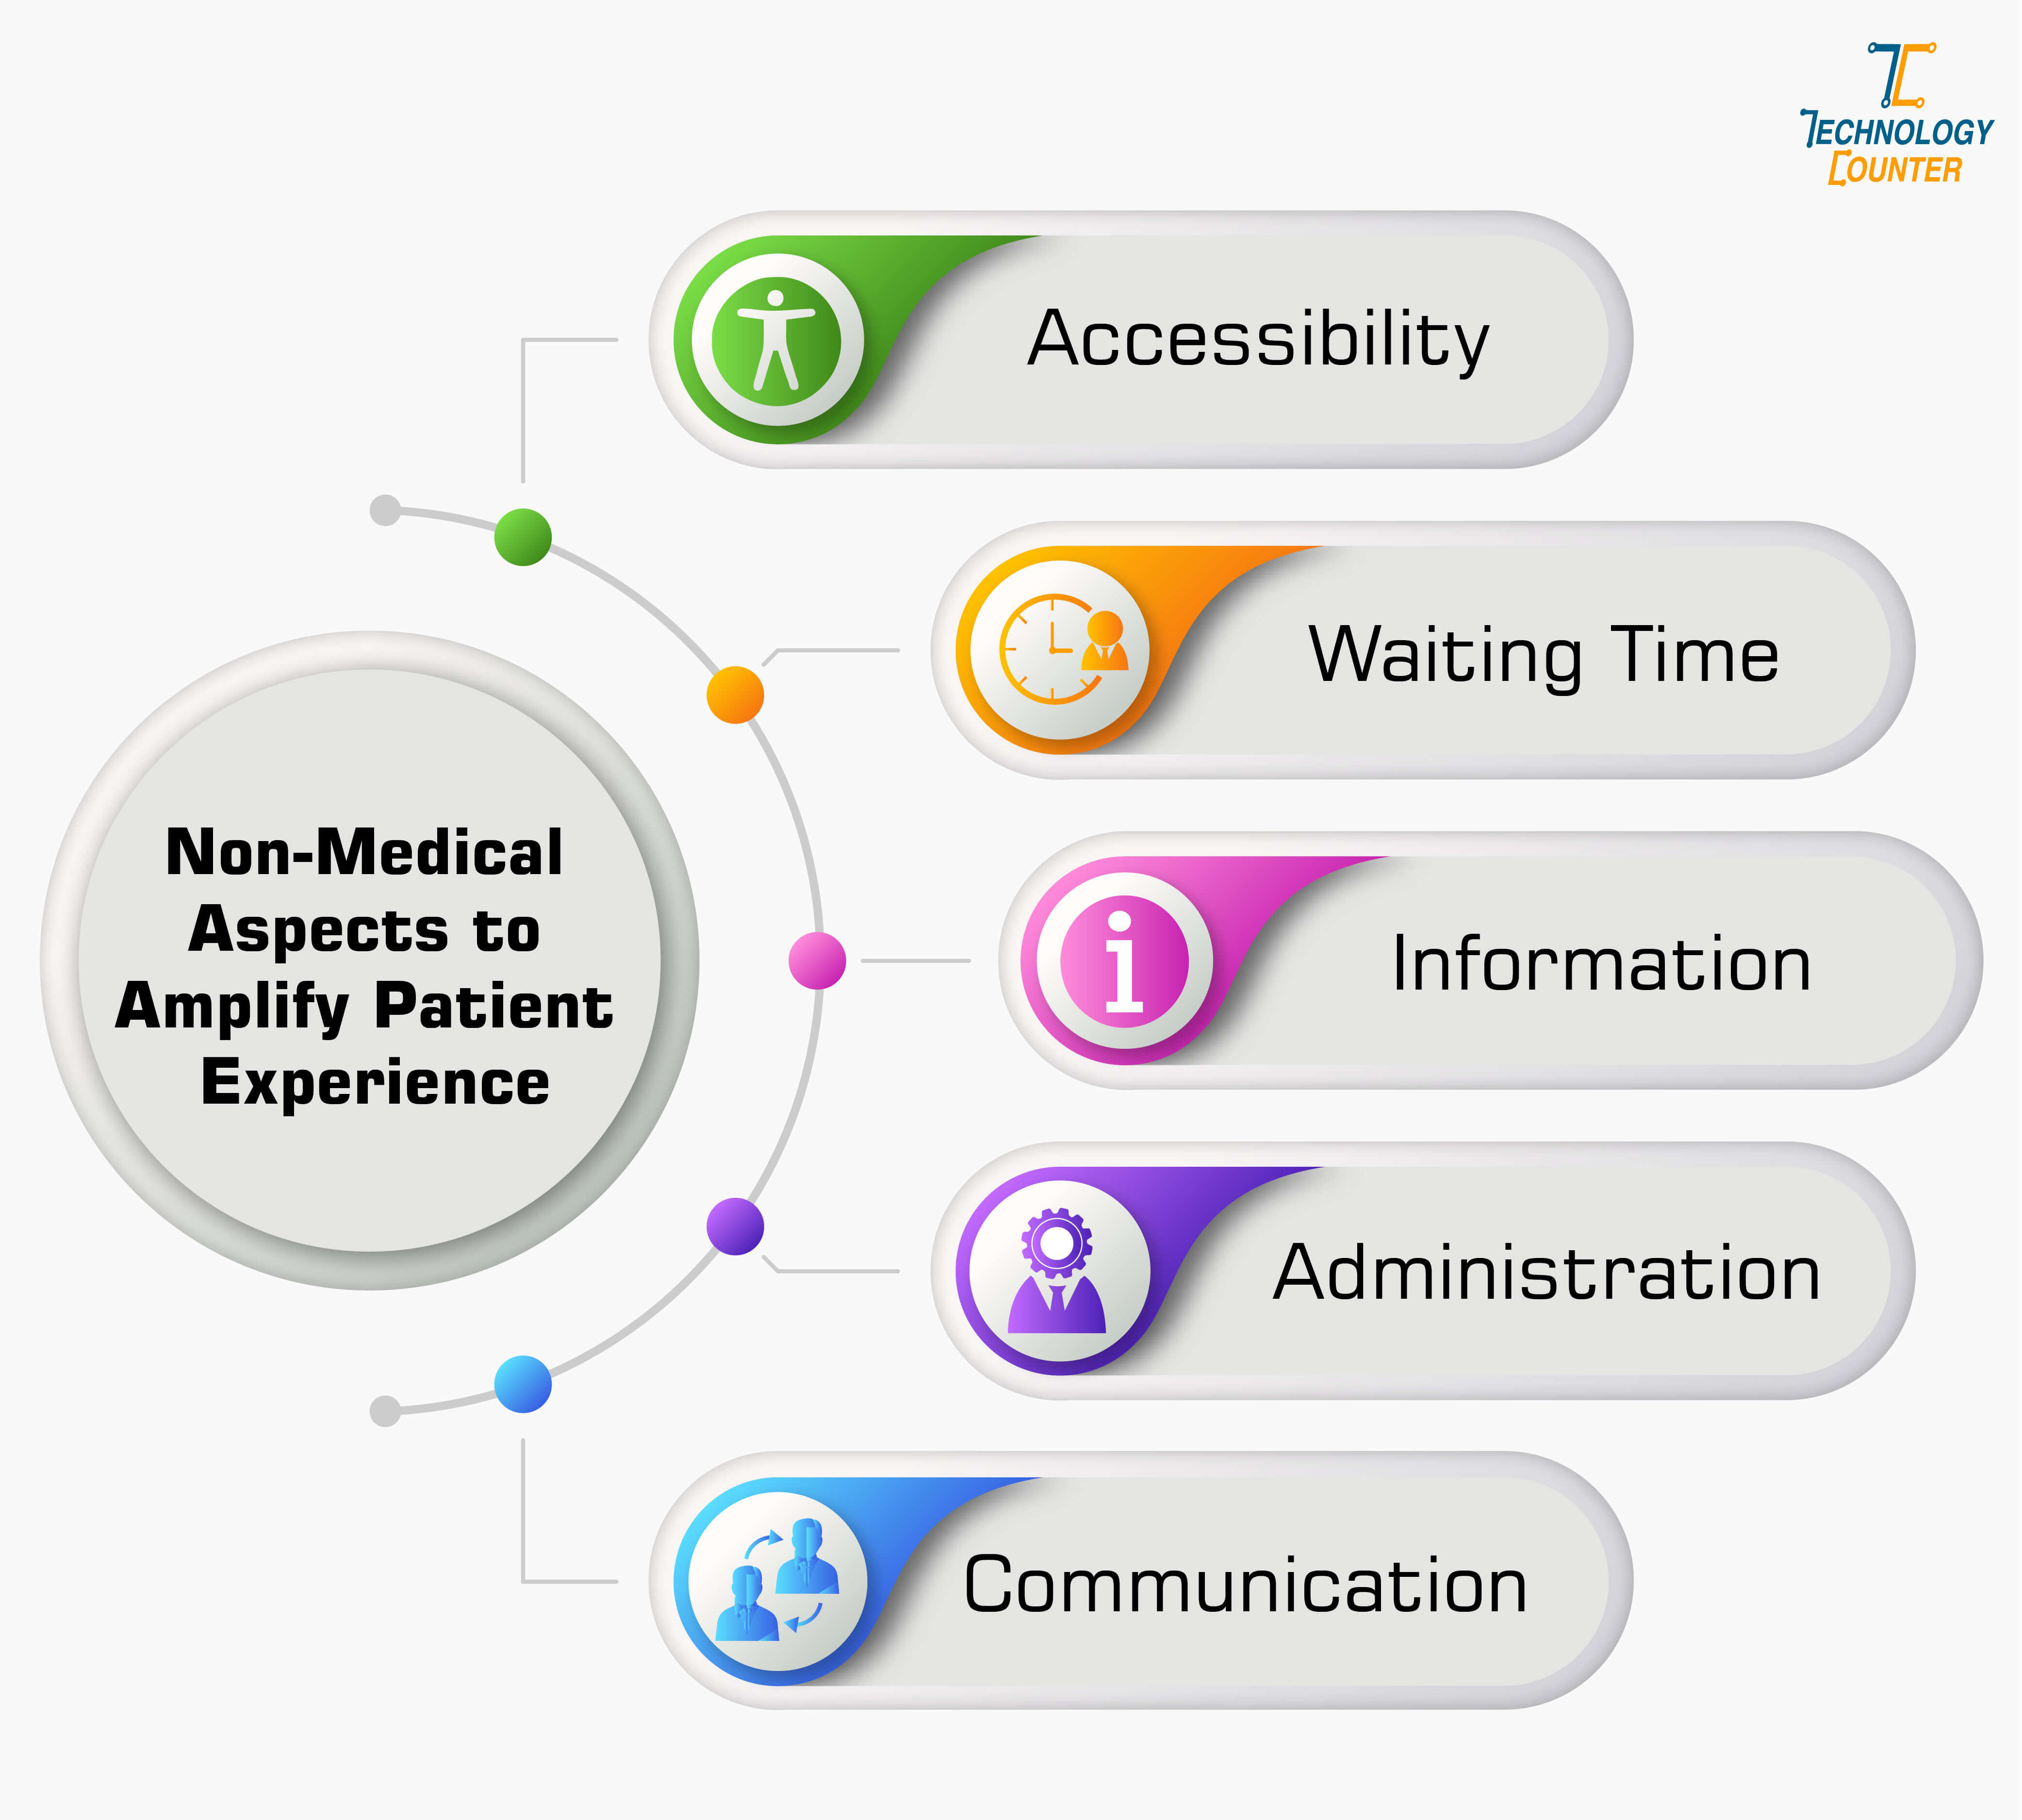 Non-Medical Aspects to Amplify Patient Experience